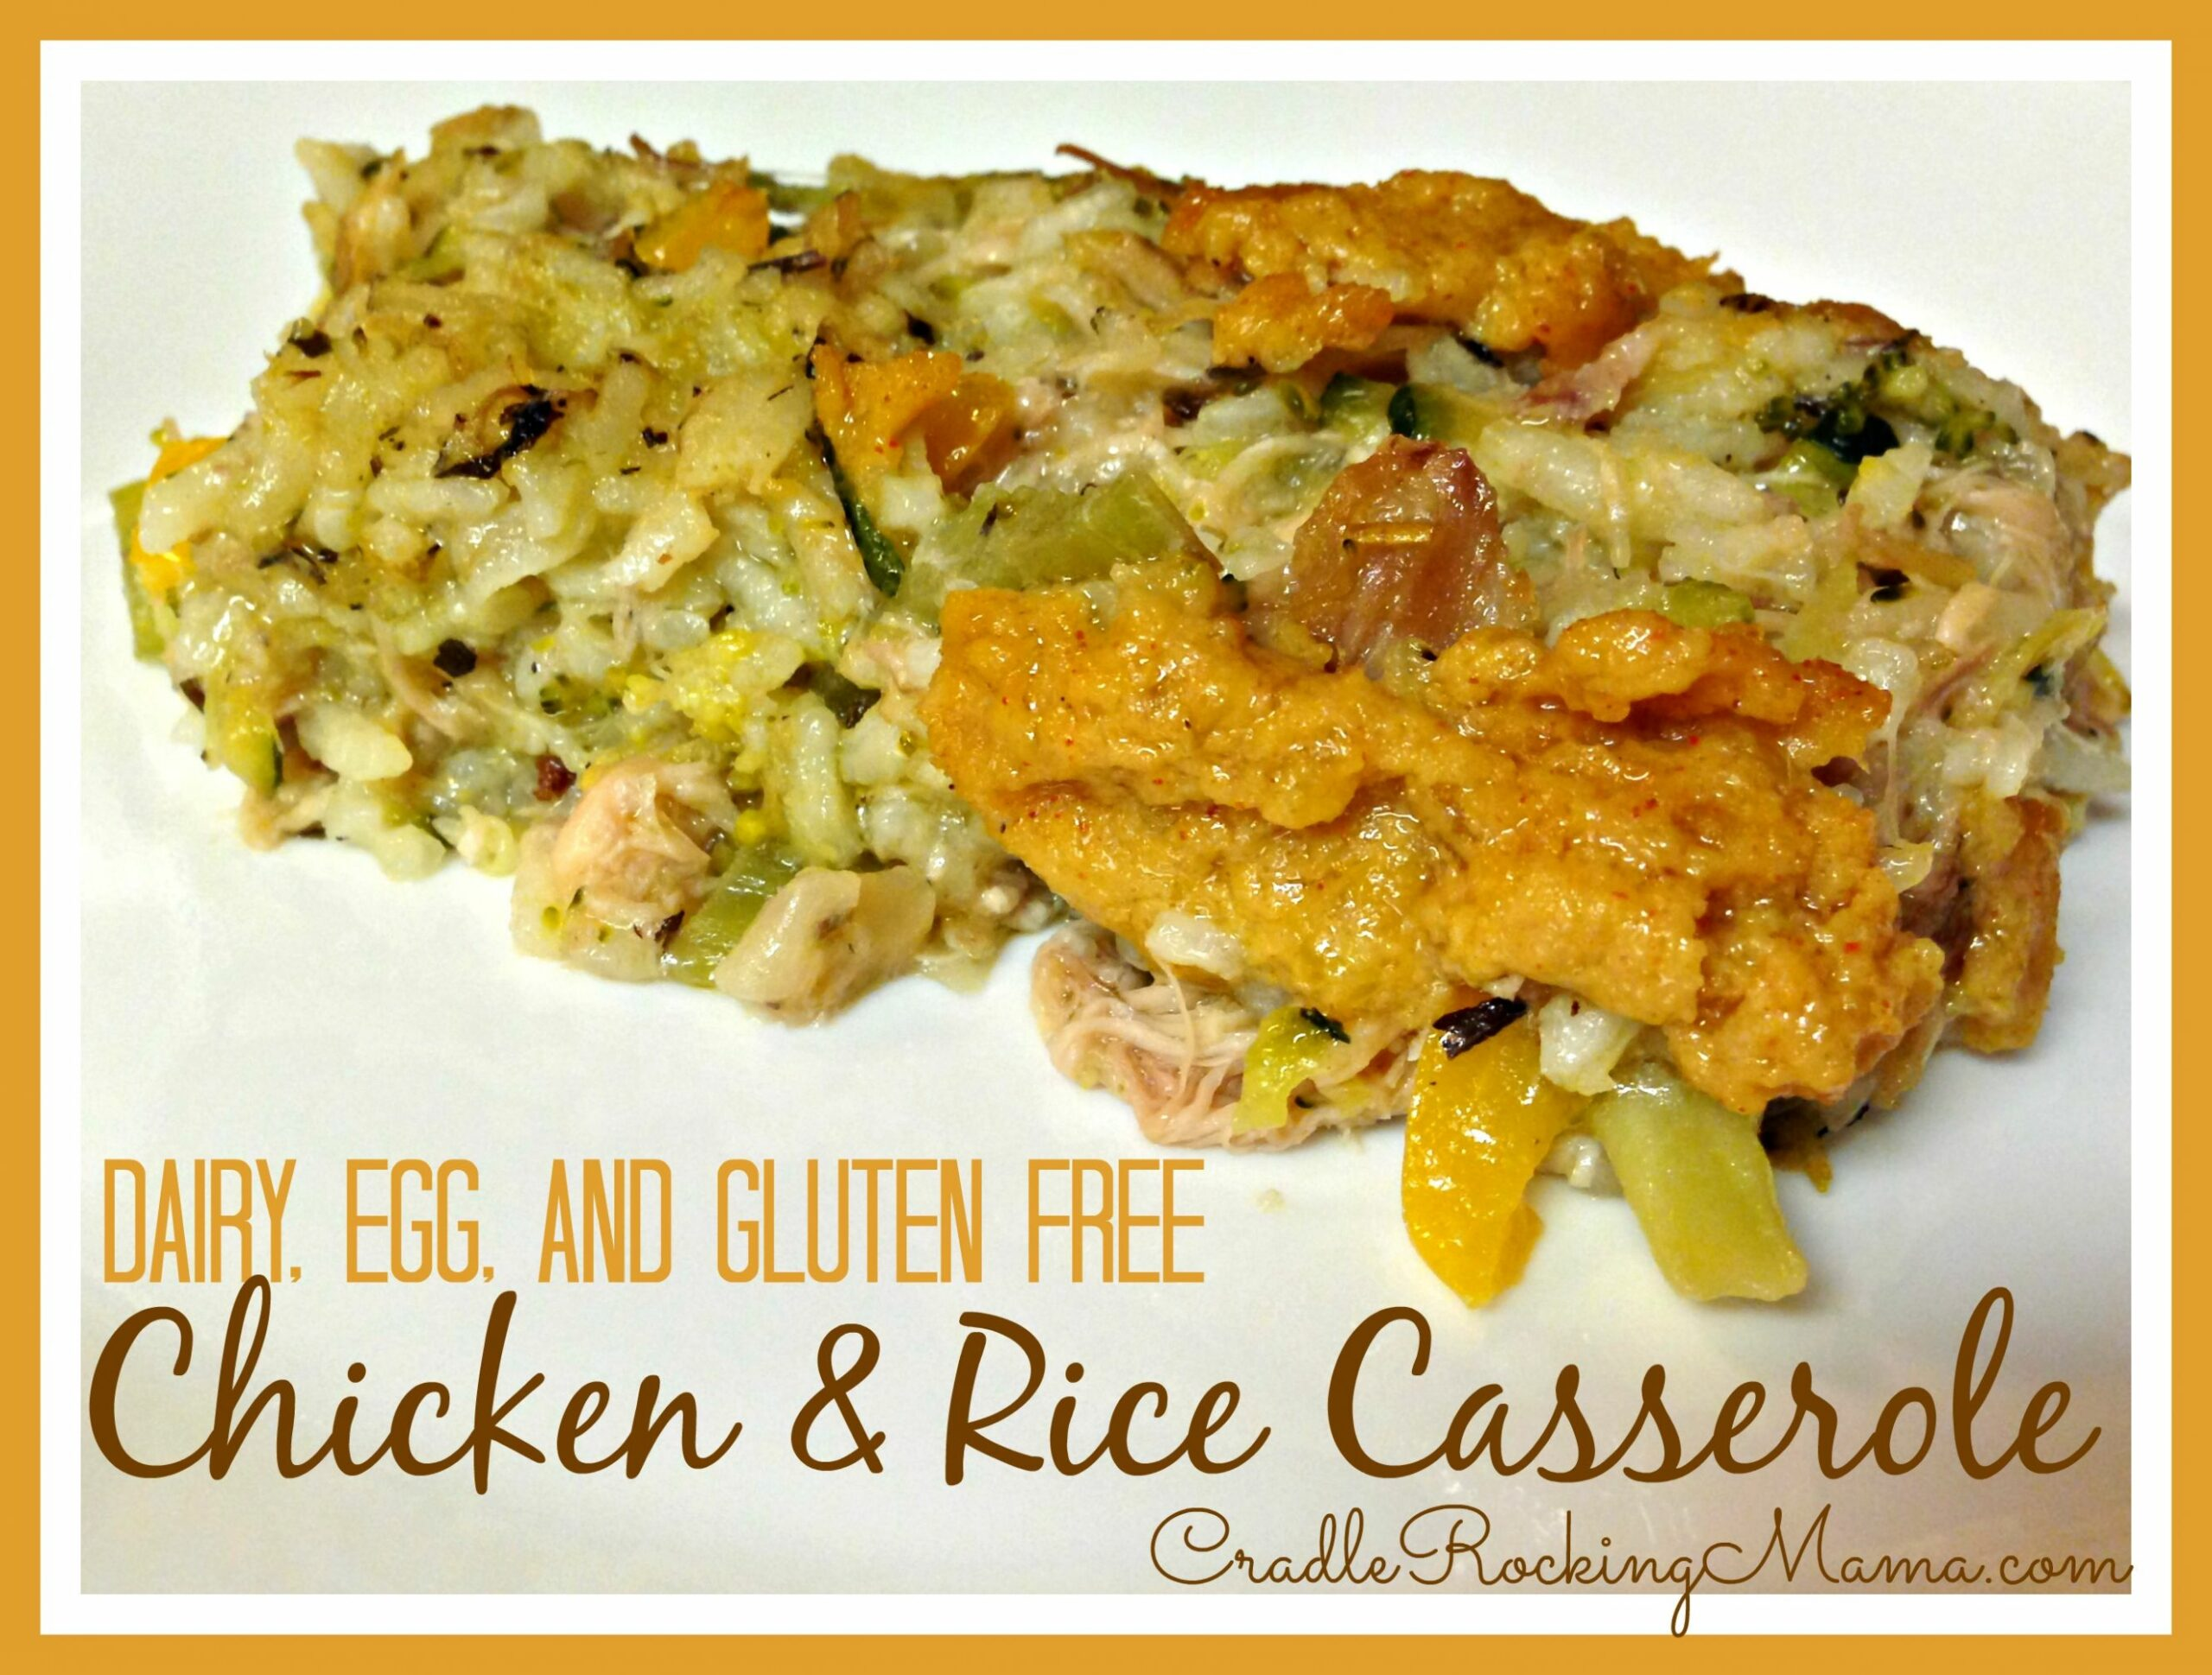 Dairy, Egg & Gluten Free Chicken & Rice Casserole - Rice Recipes Dairy Free